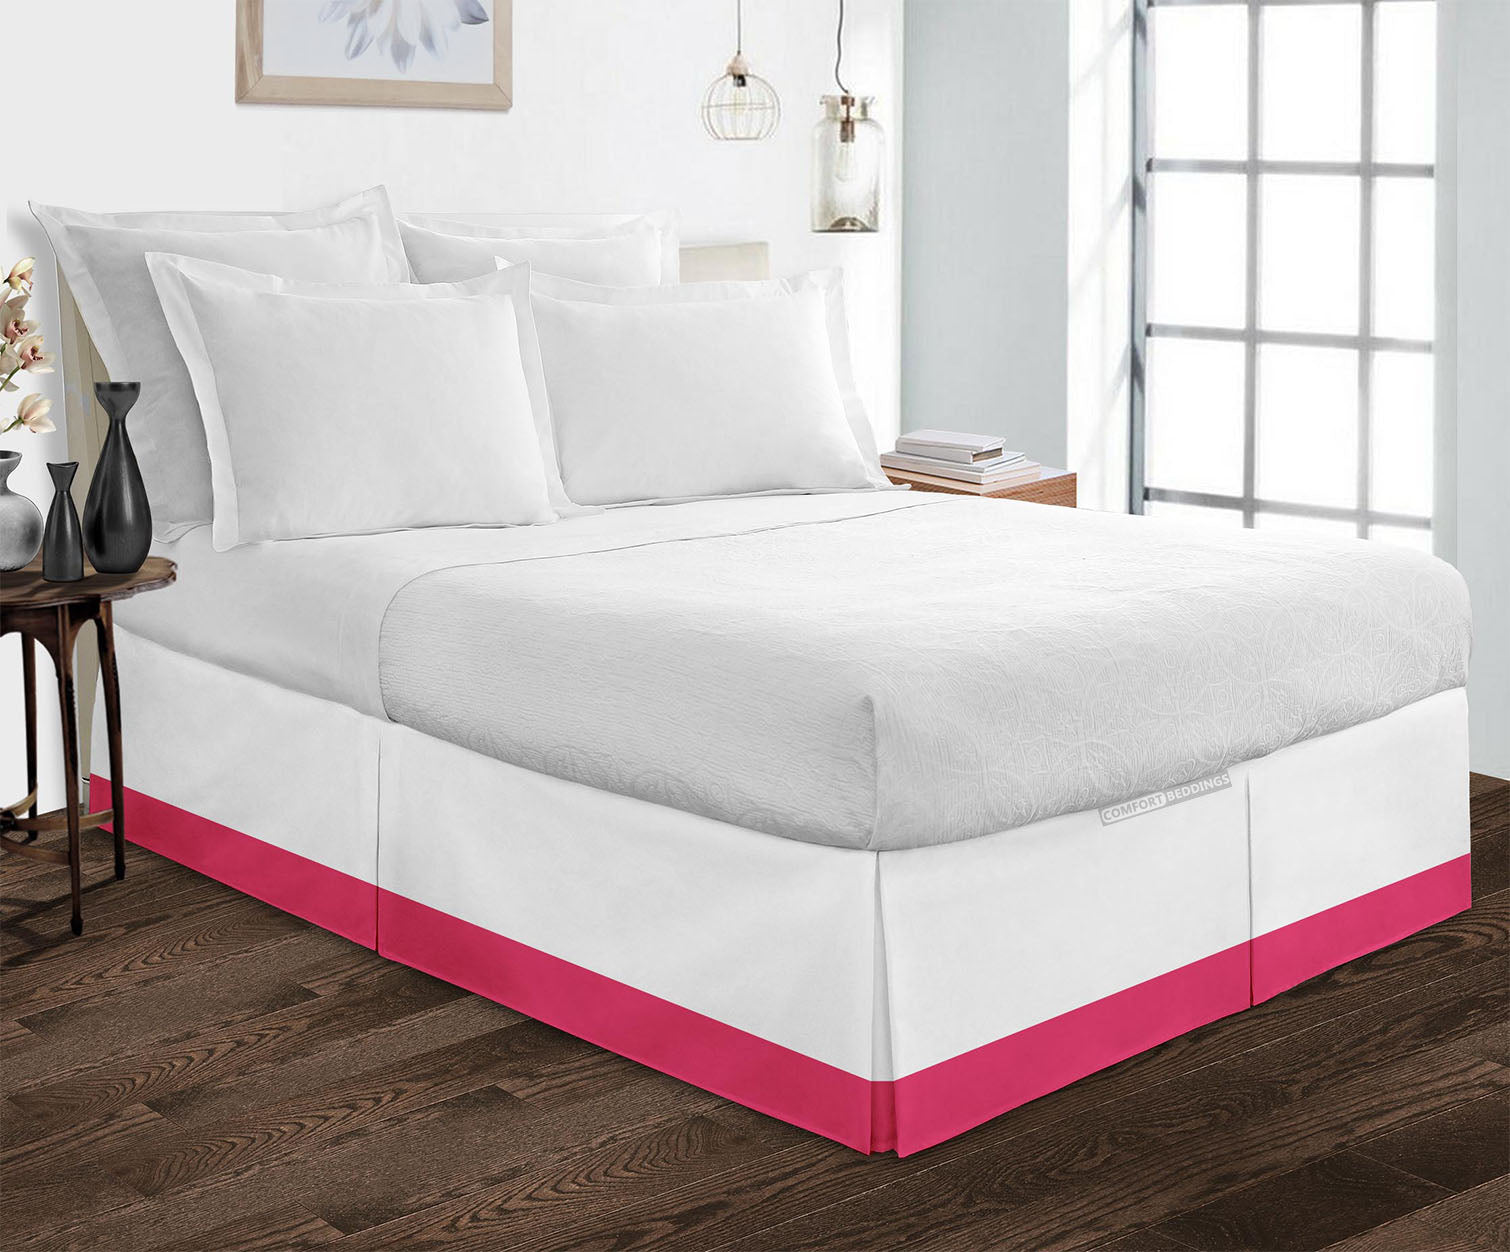 Essential hot pink two tone bed skirt